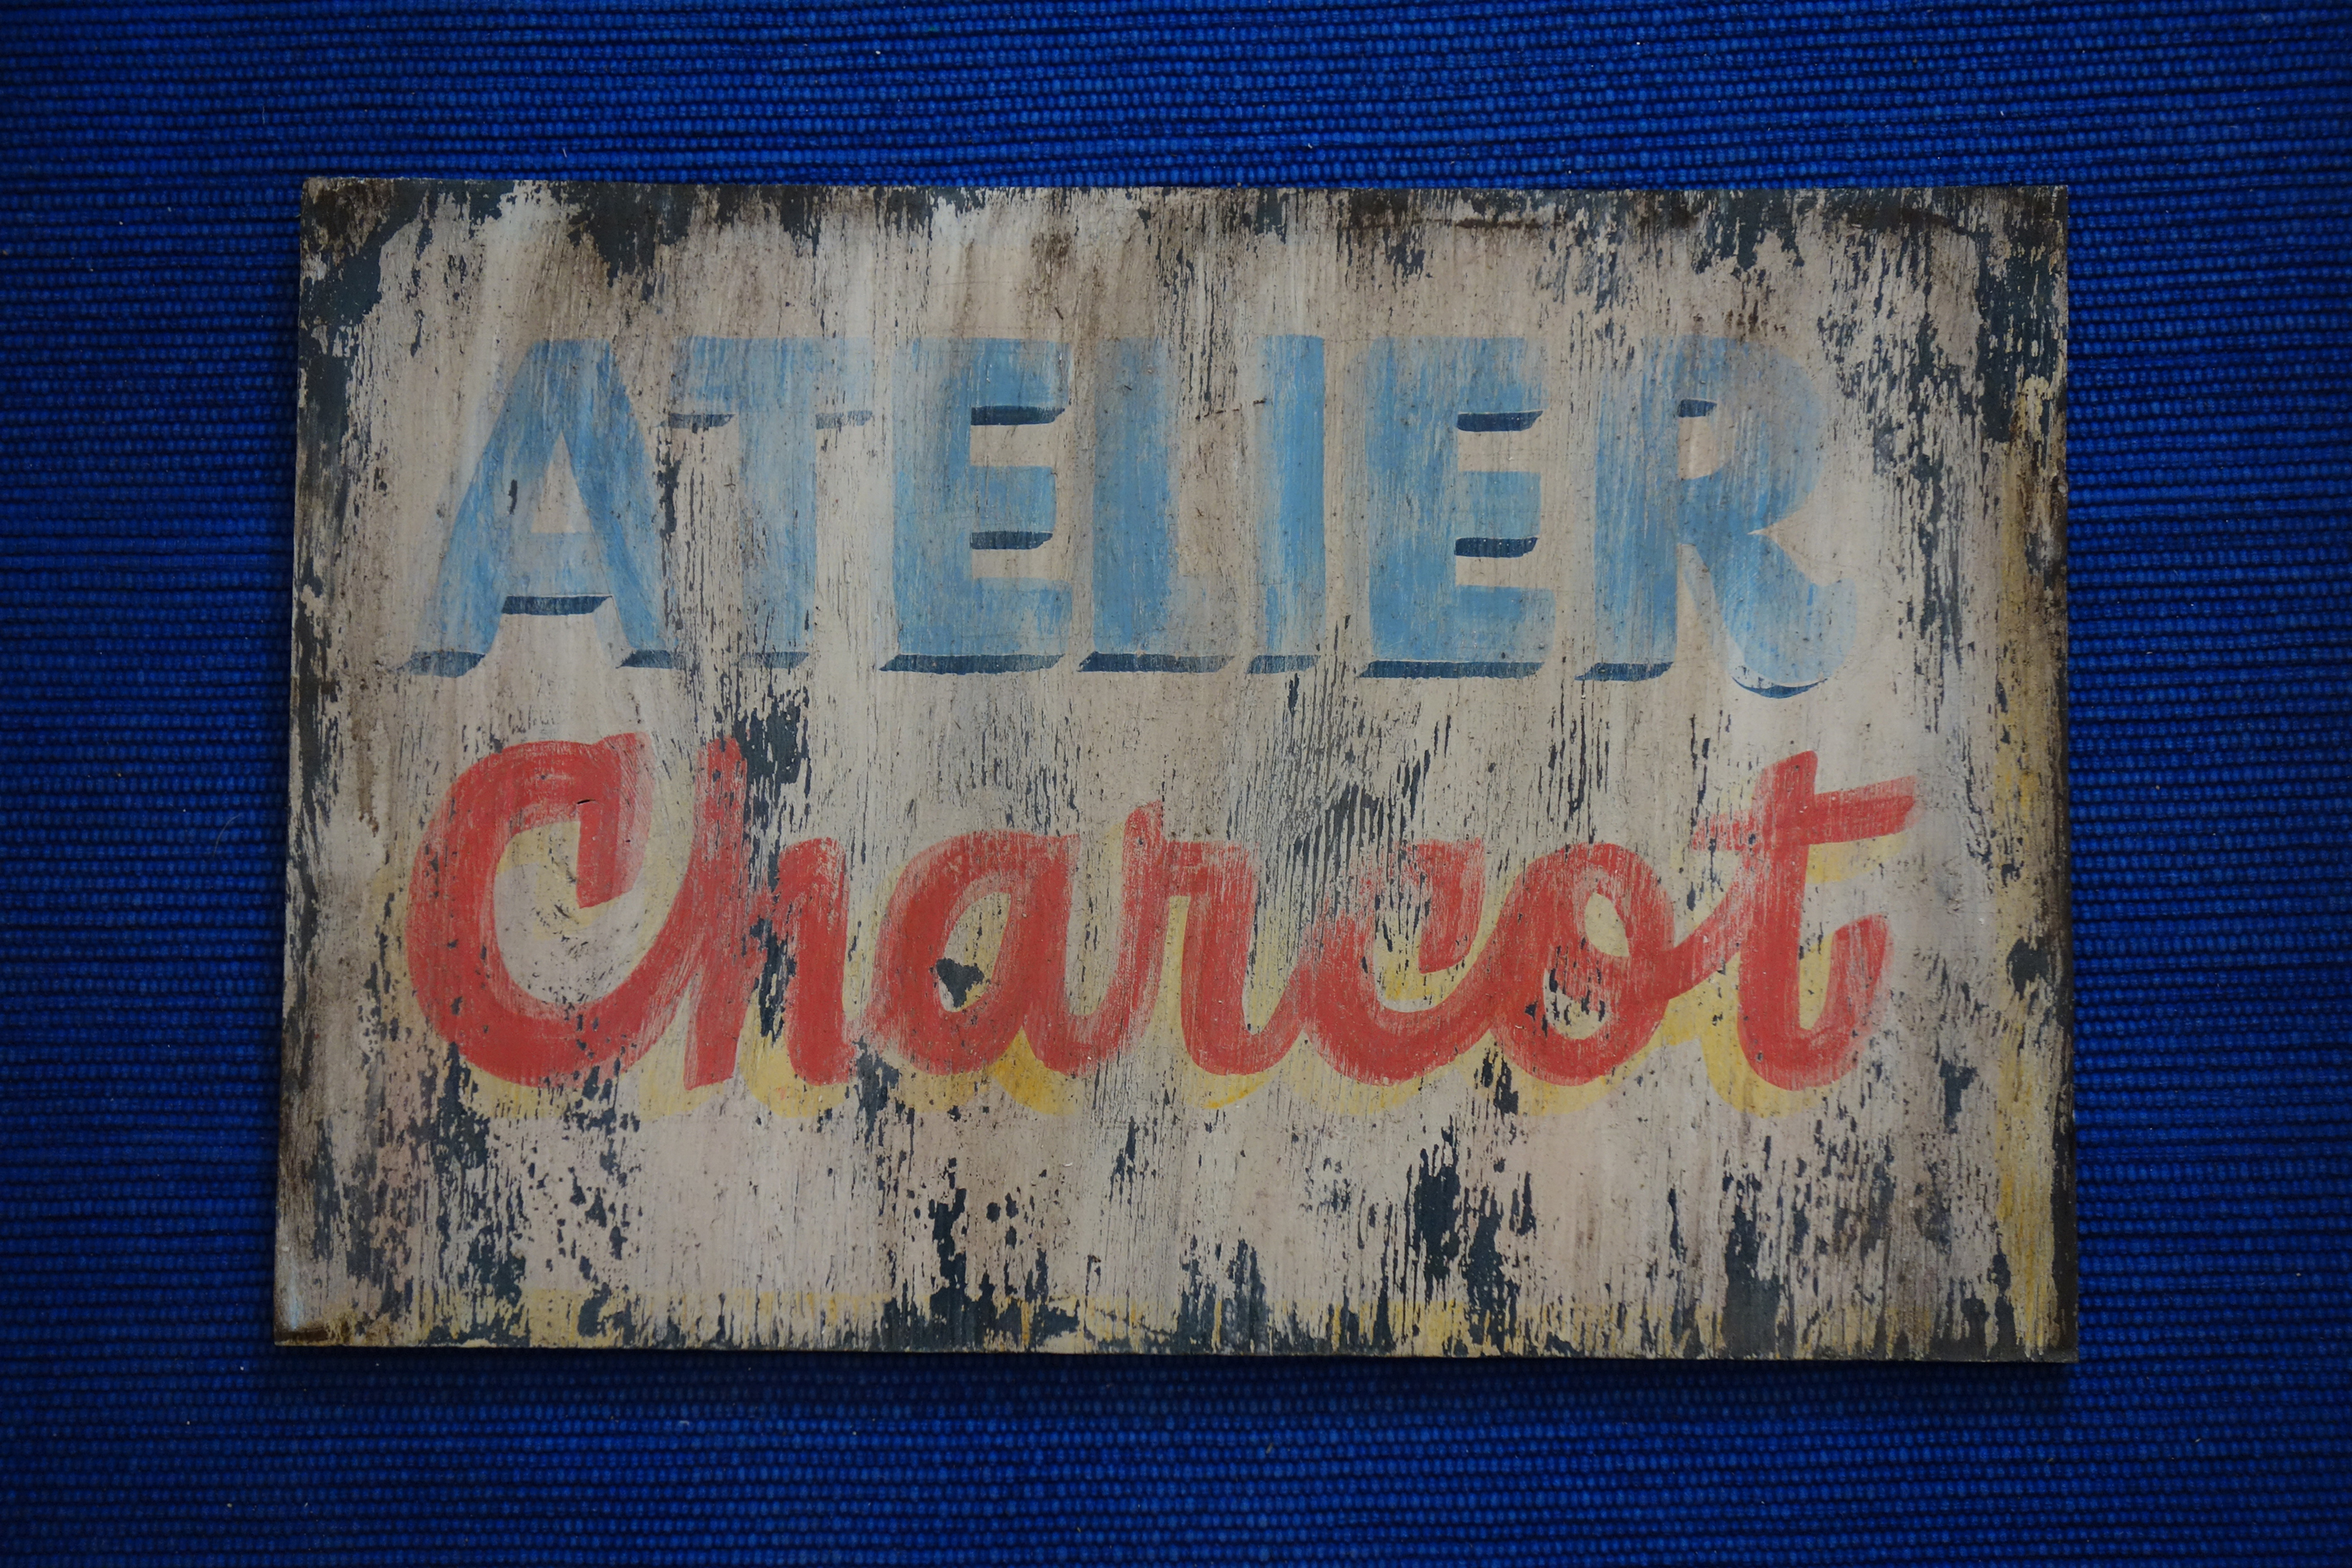 Atelier Charcot